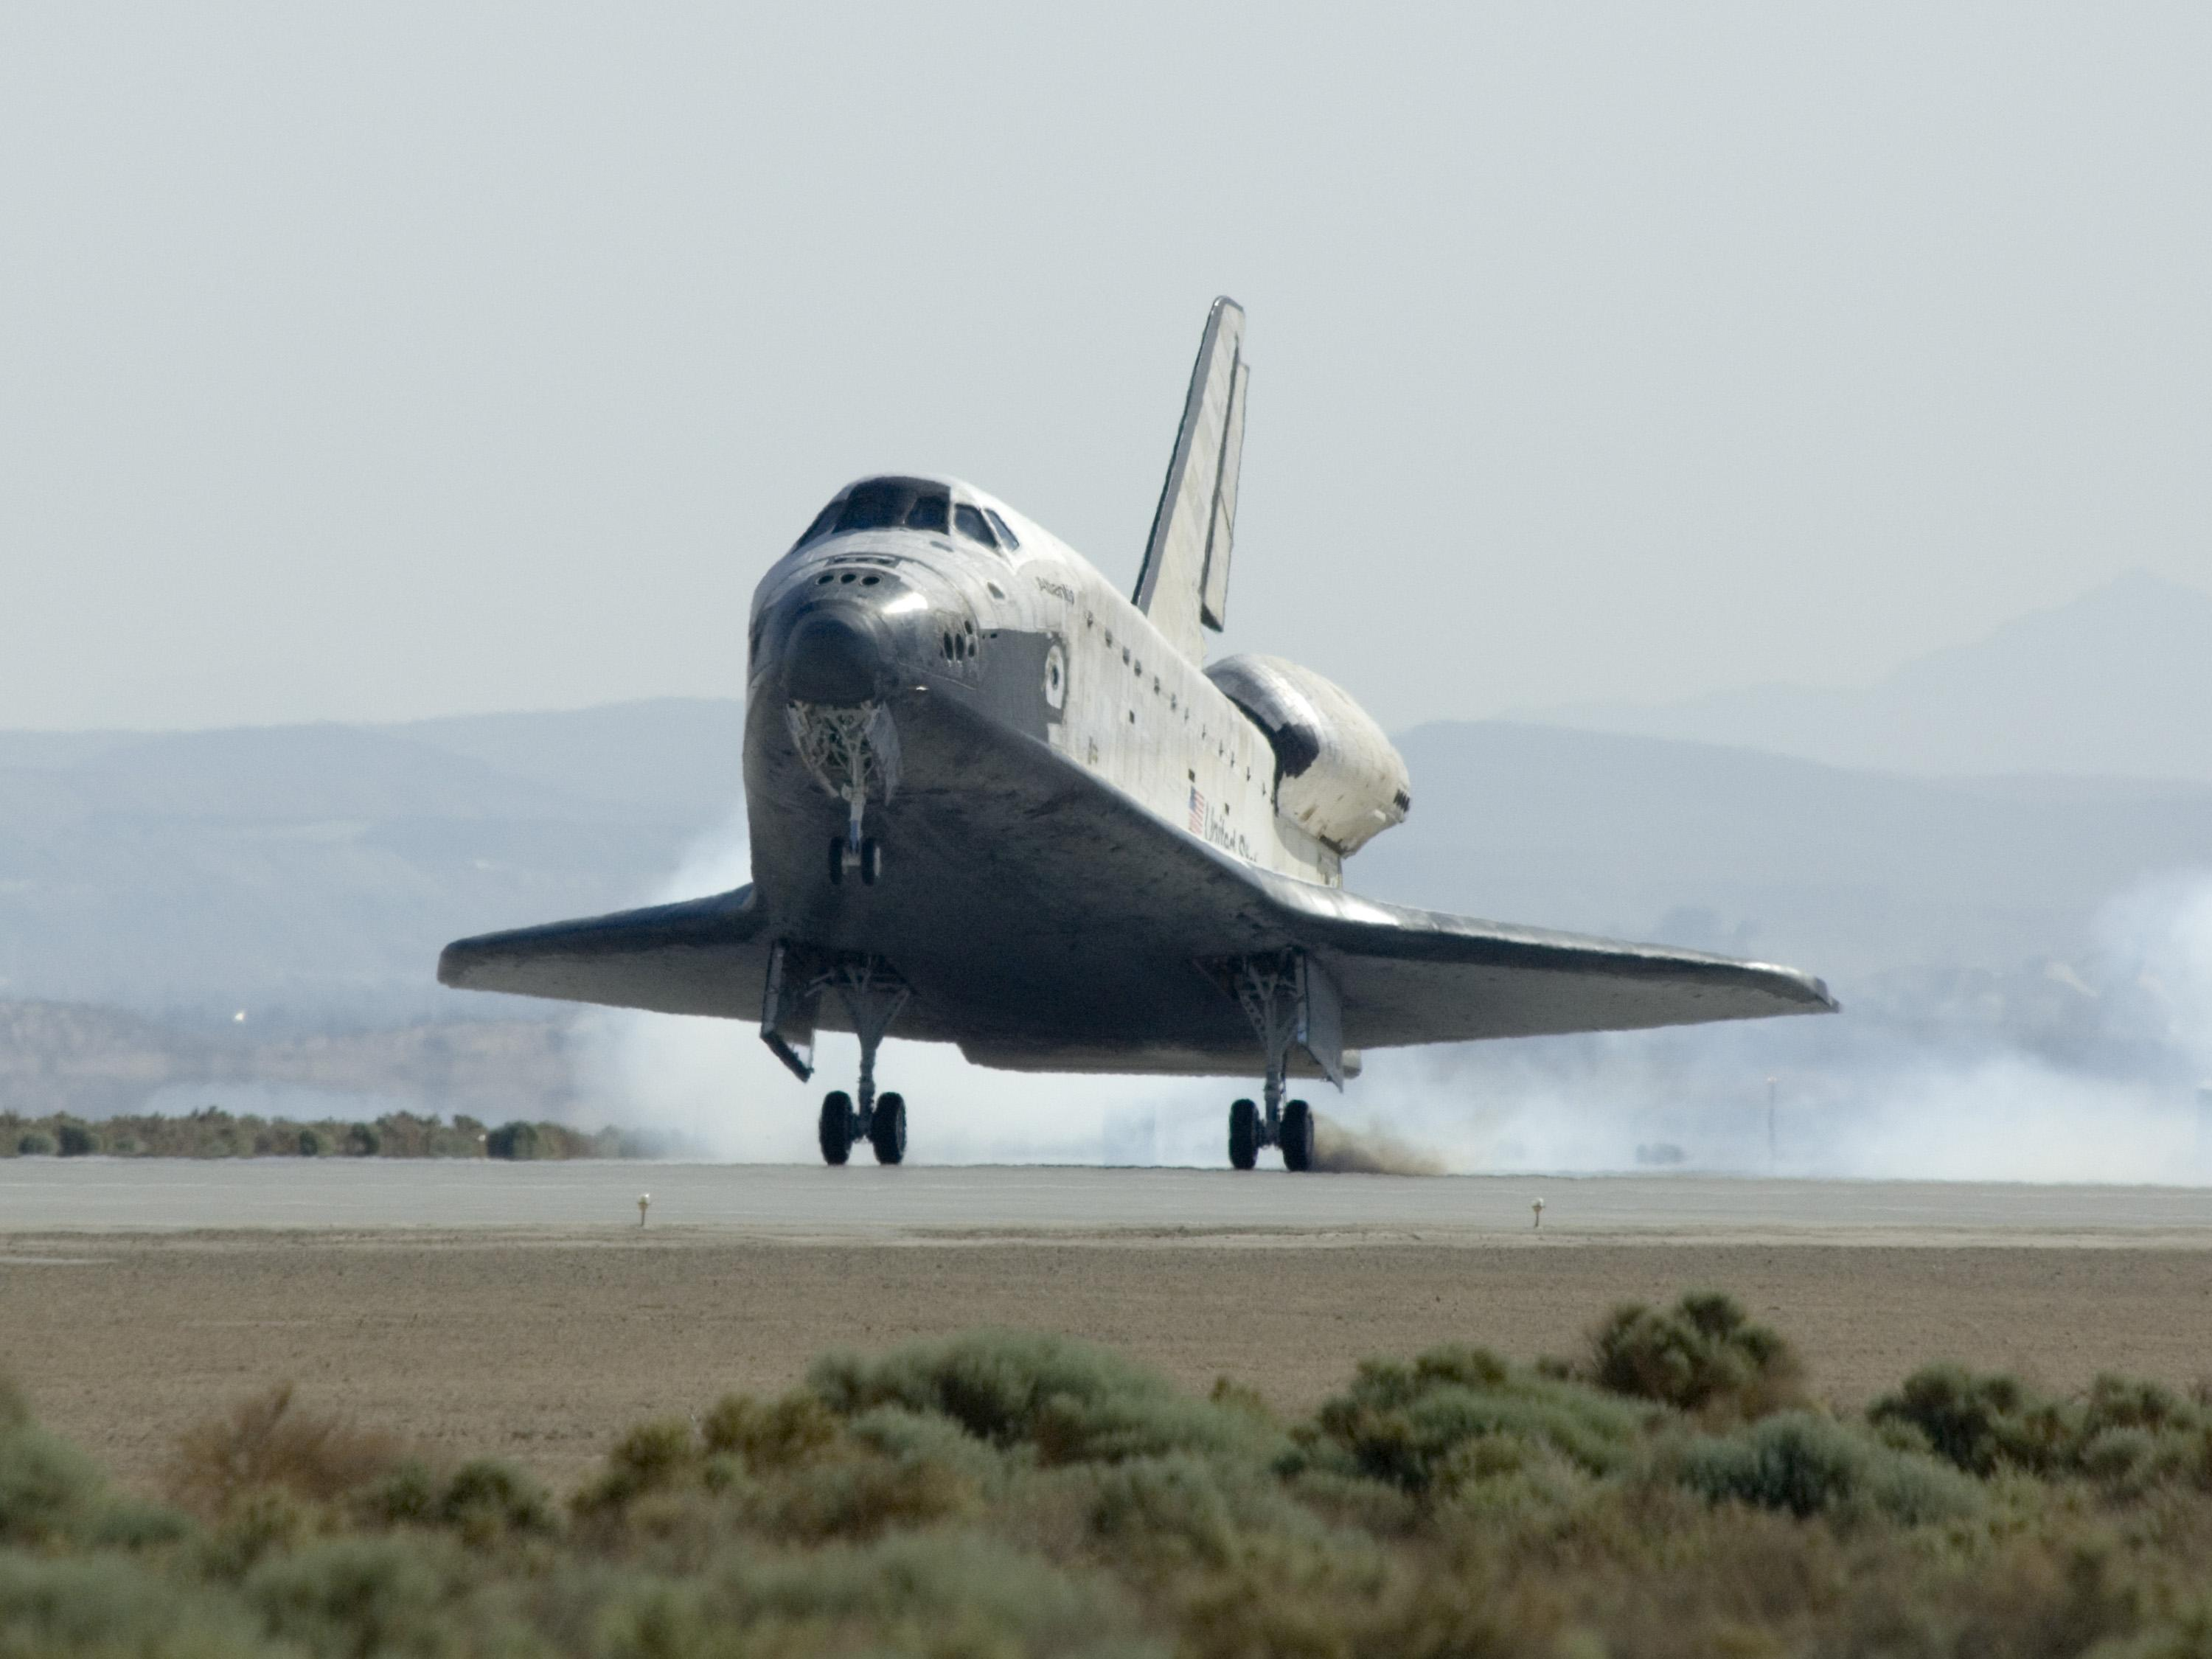 space shuttle landing apk - photo #11